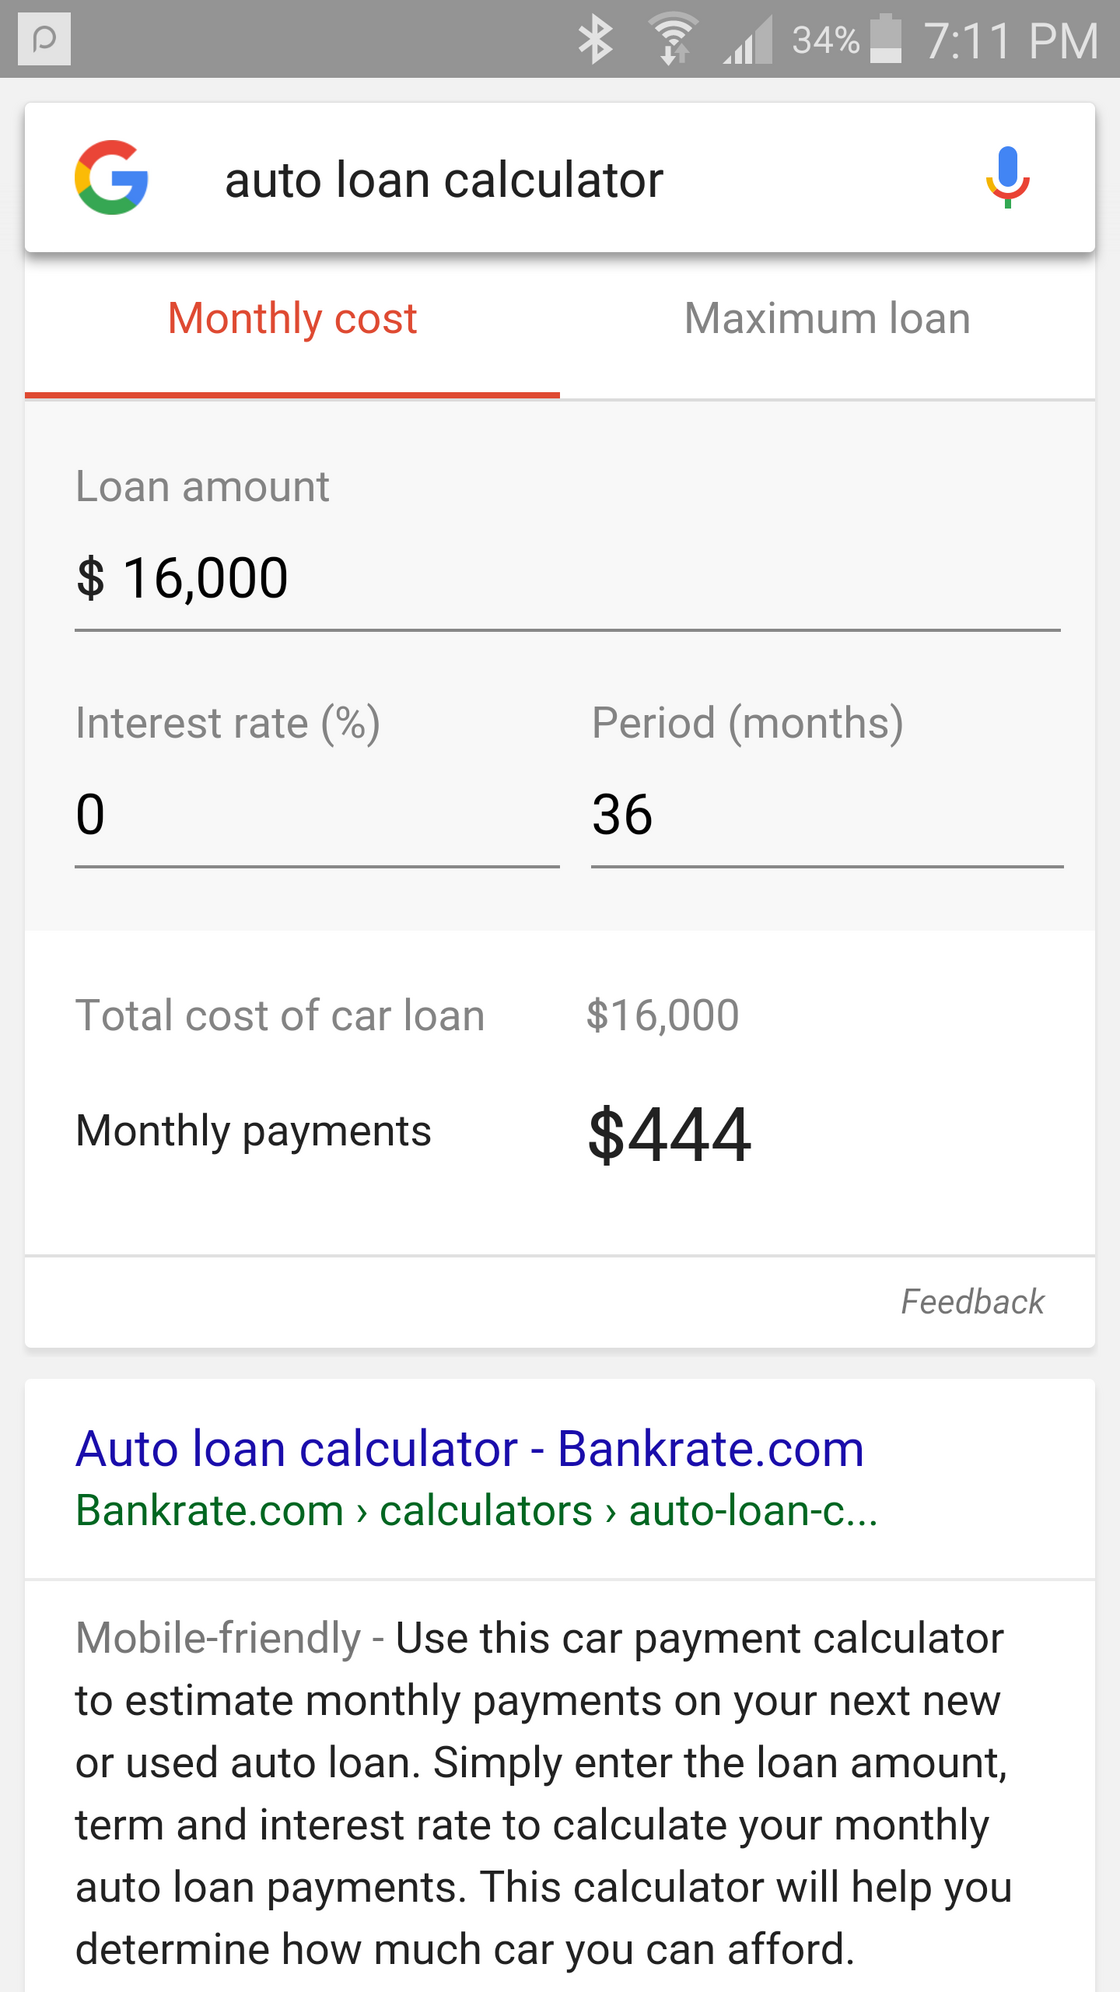 How Do You Figure Ll Have A Payment Under 100 Dollars Month On 3 Year Finance For 16 000